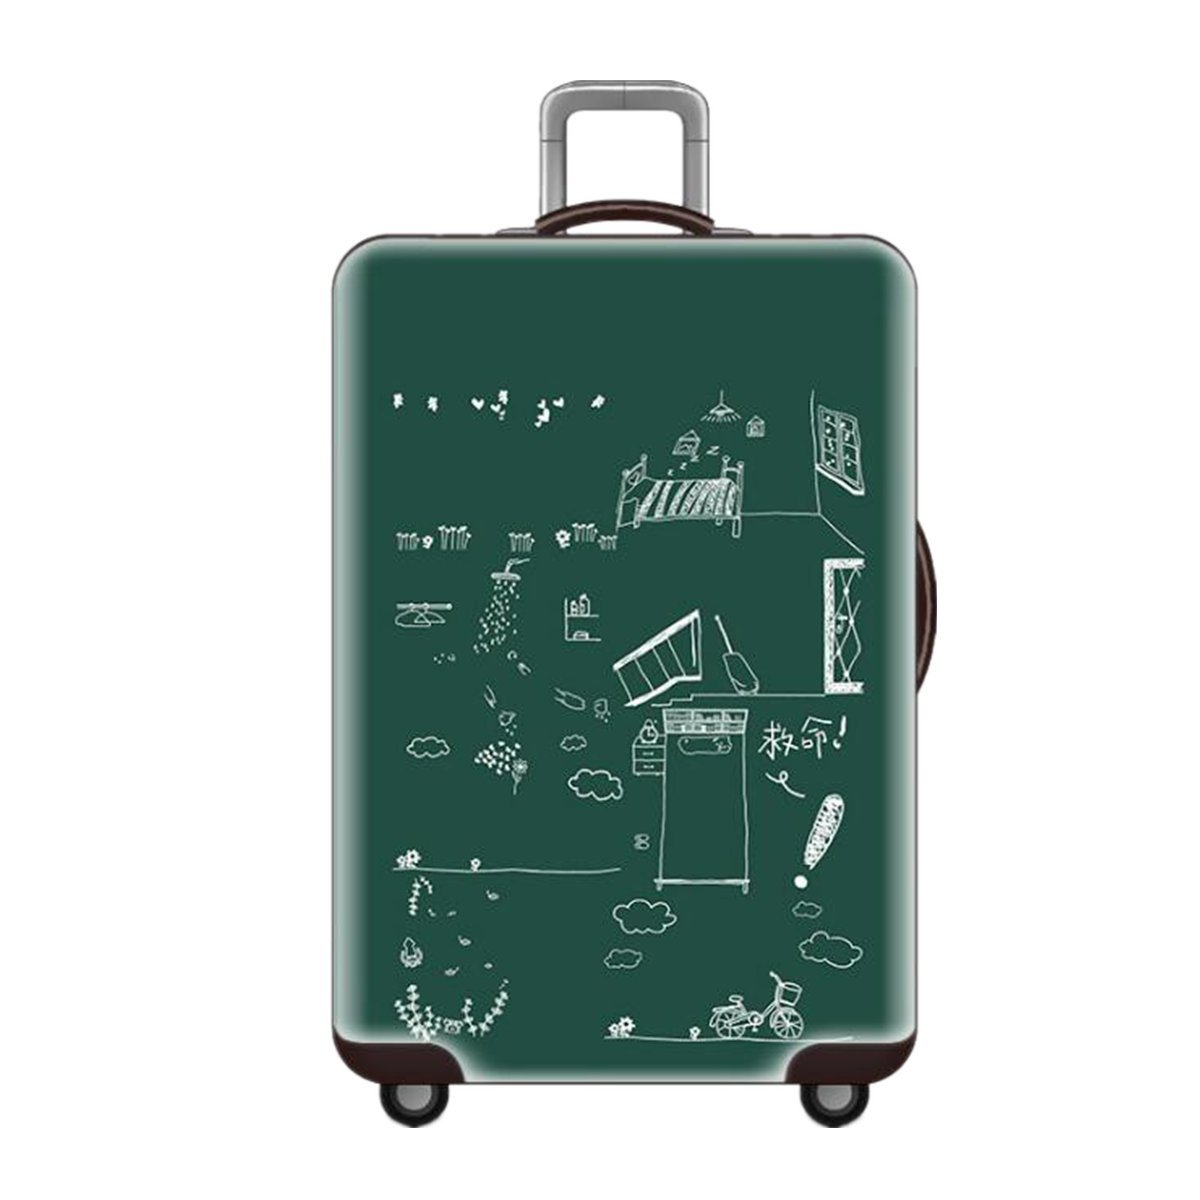 Elastic Luggage Cover Travel Suitcase Protector Dustproof Protection Trolley Case